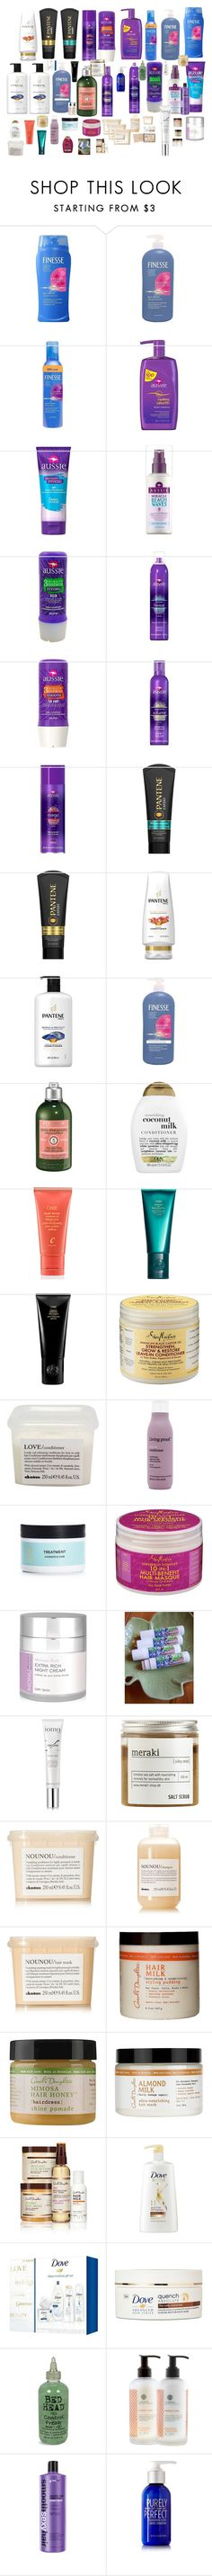 """""""Conditioners :)"""" by airandearth on Polyvore featuring beauty, Finesse, L'Occitane, Organix, Oribe, Space NK, SheaMoisture, Davines, Living Proof and Rapunzel Of Sweden"""